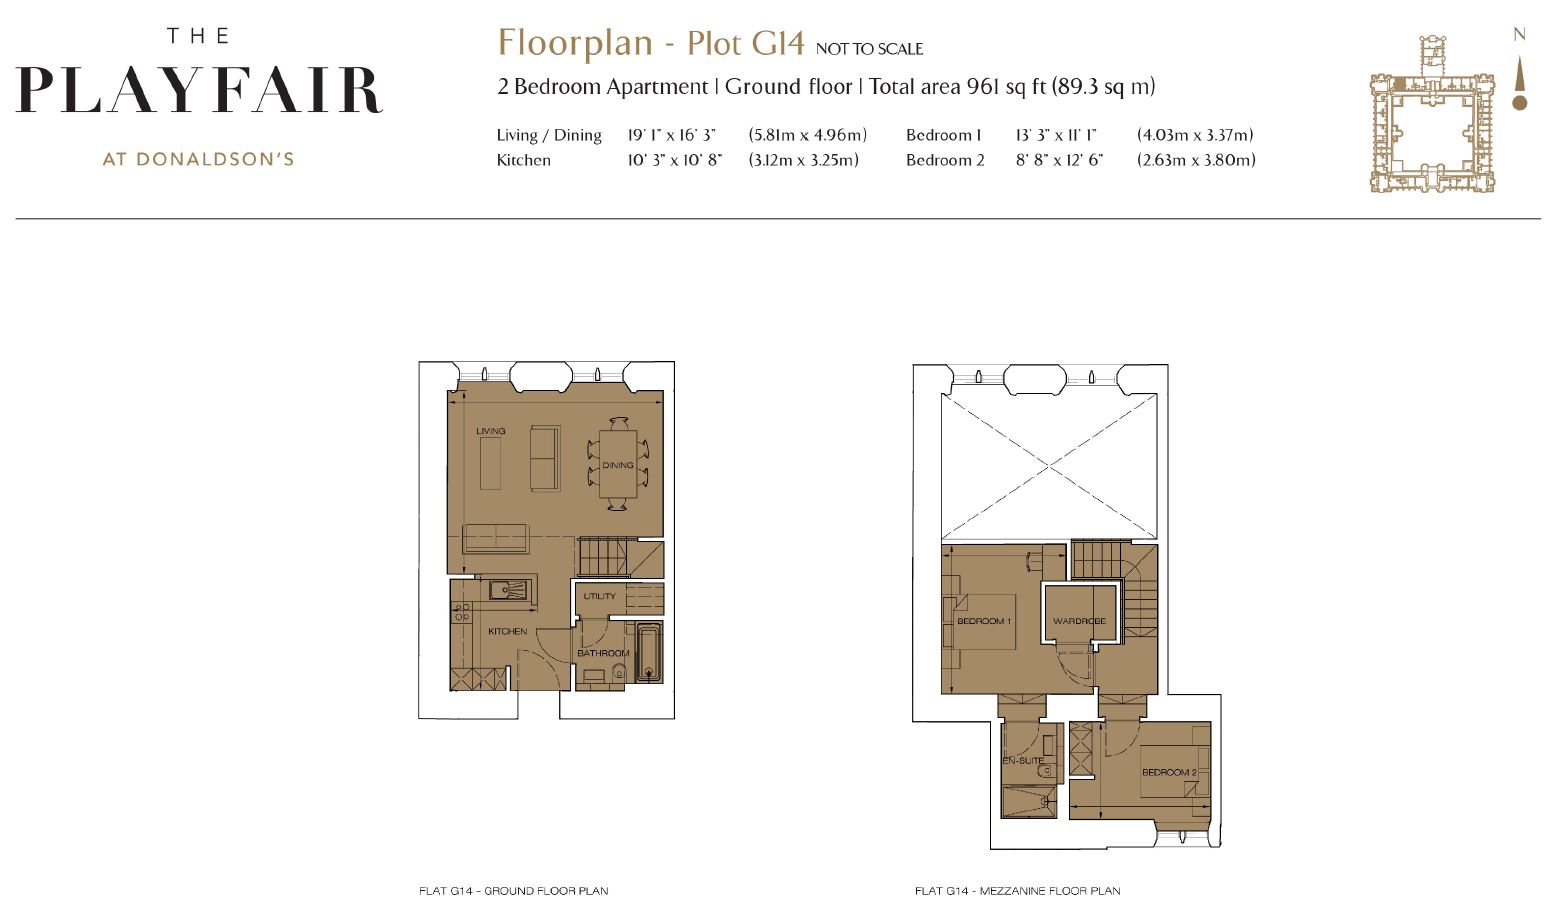 Floorplans for G14 - Donaldson's, West Coates, Edinburgh, EH12